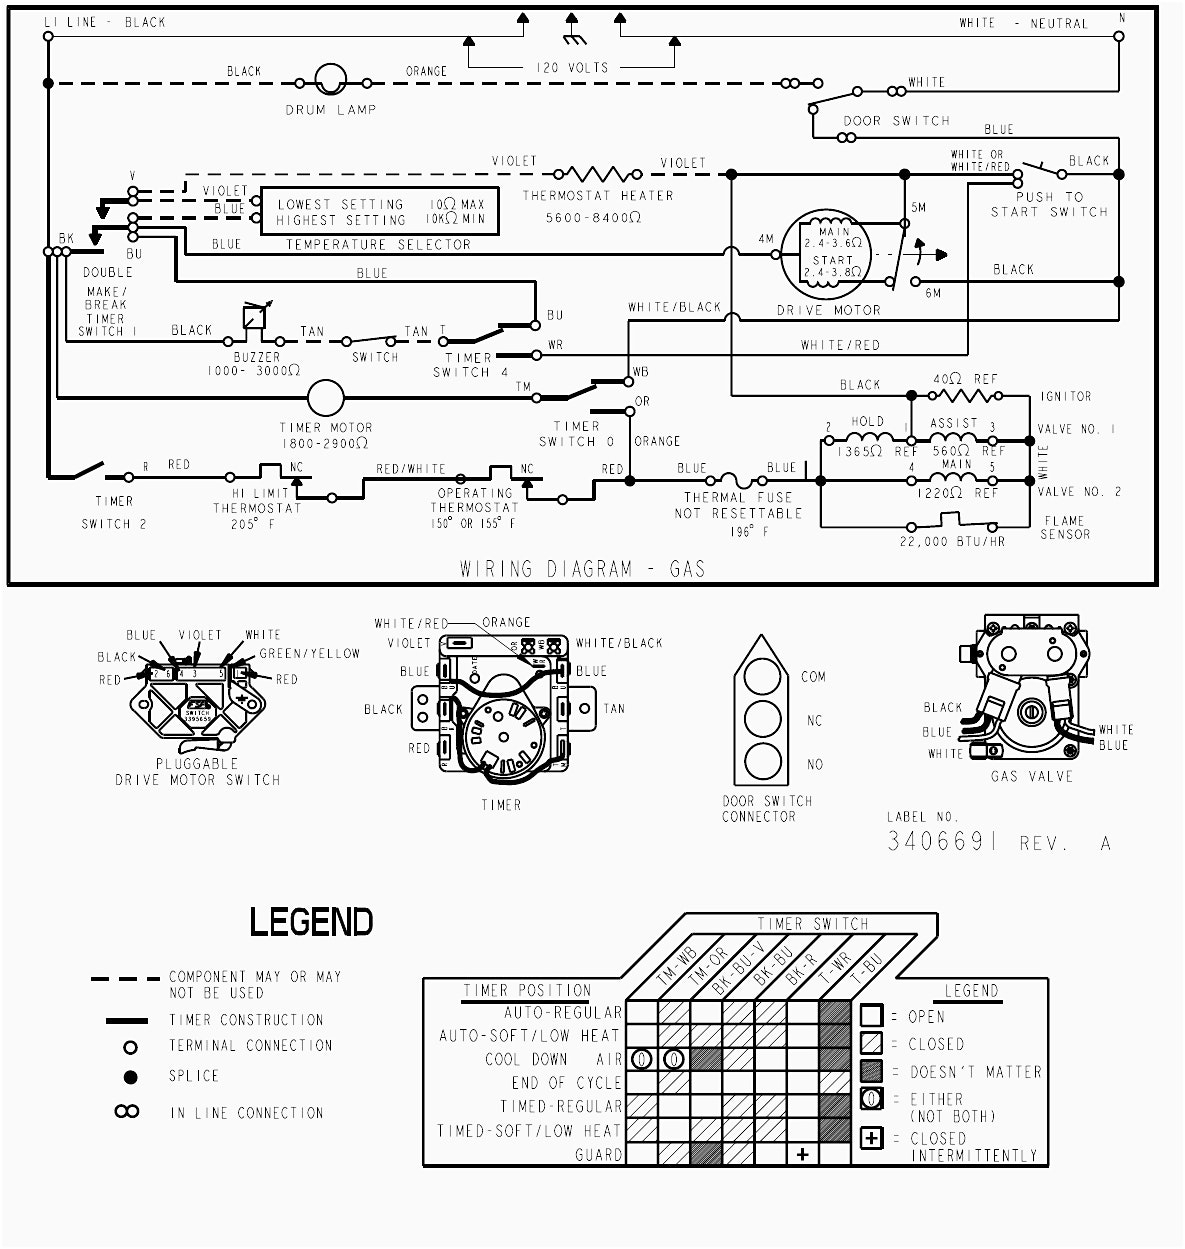 whirlpool electric dryer wiring diagram Download-Whirlpool Dryer Wiring Diagram Electric Parts Fine Ansis Me Within Best 10-l